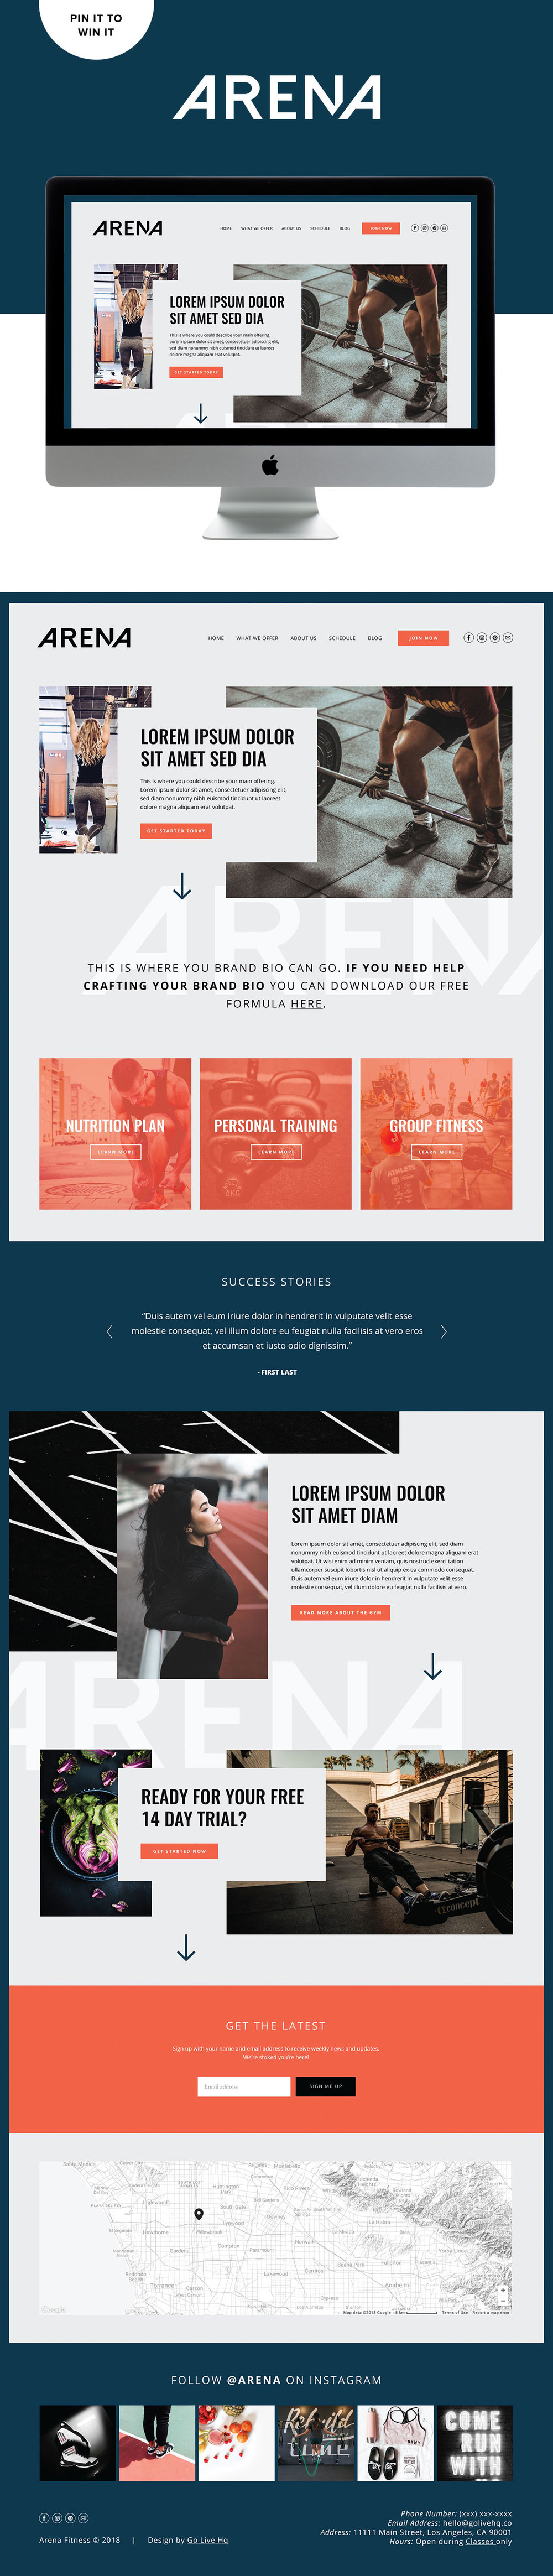 Fitness Trainers and Coaches Squarespace Website Template